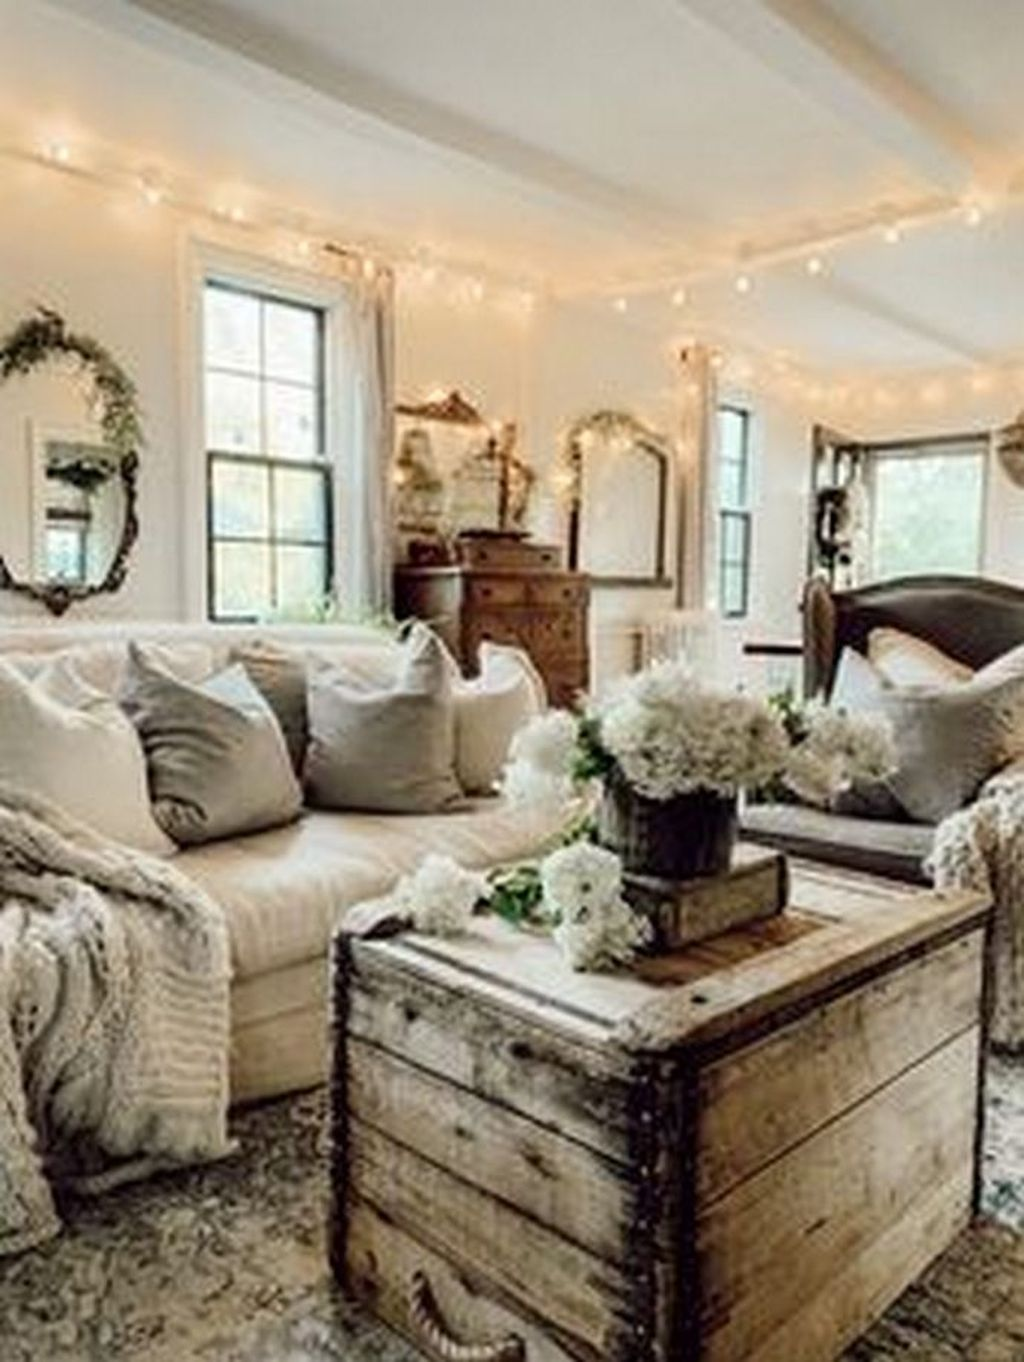 The Best Ideas To Decorate Interior Design With Farmhouse Style 07